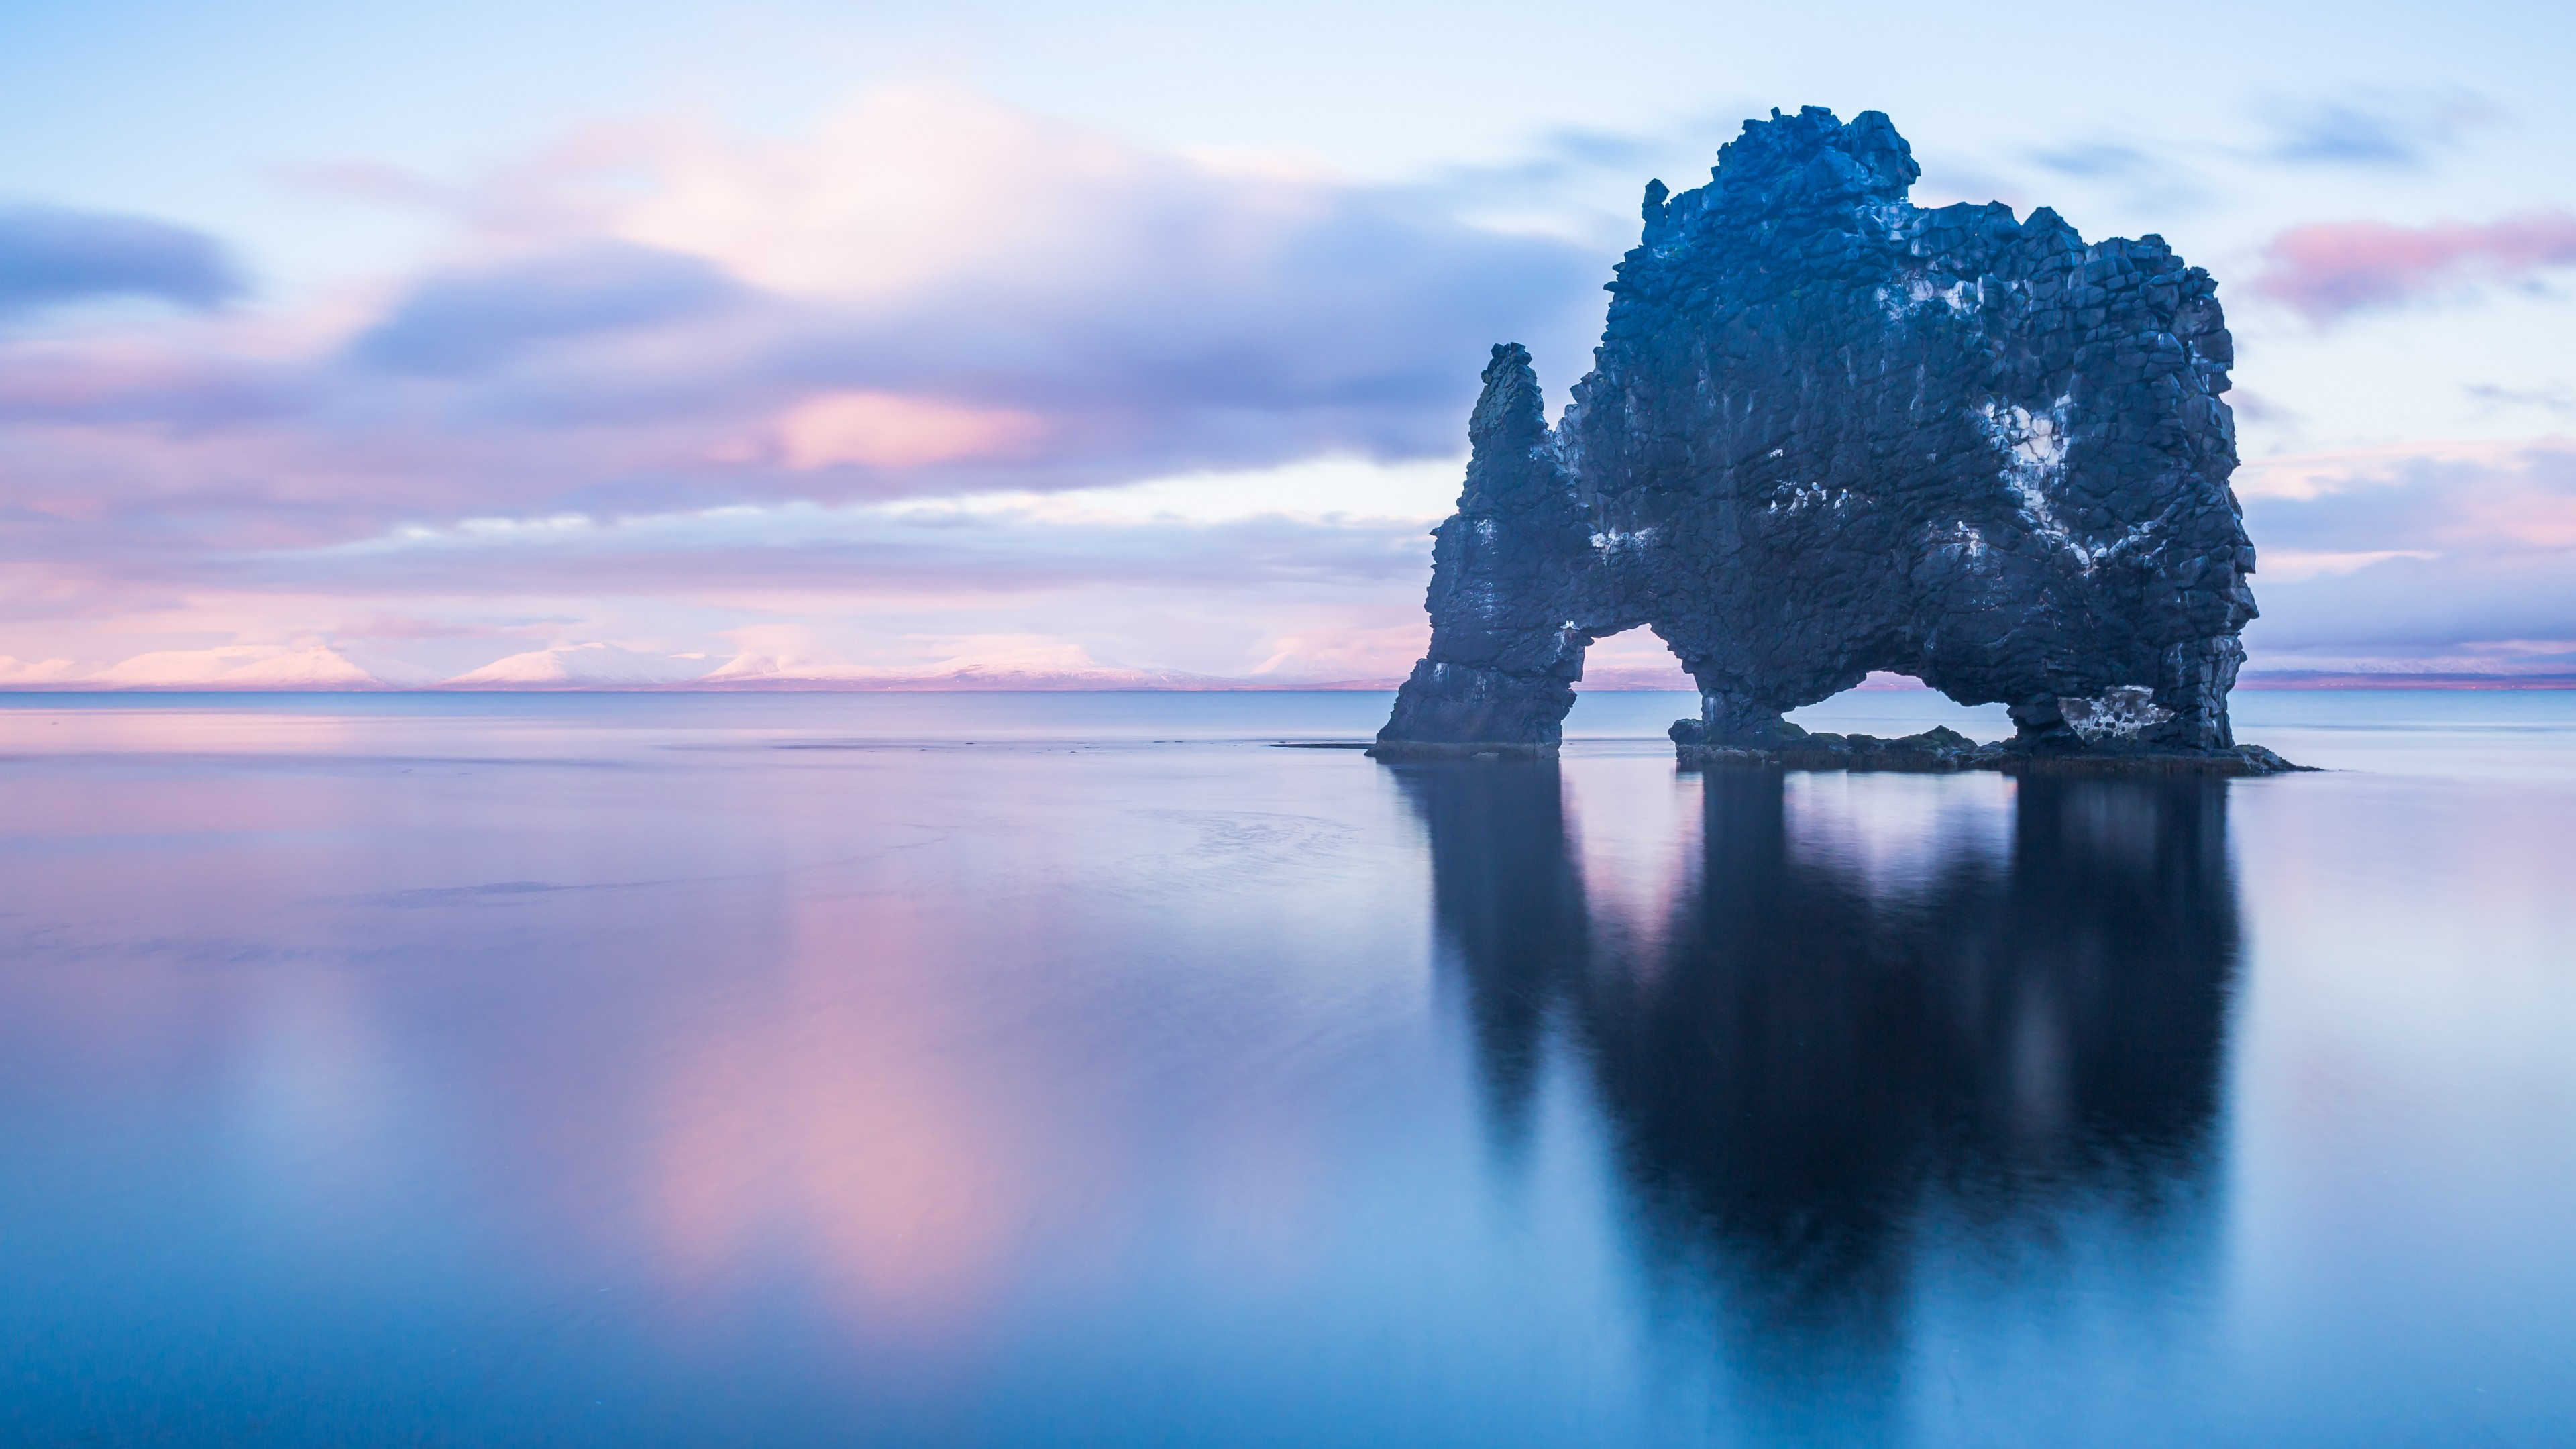 Wallpaper Sea Ocean Rock Sky Hvitserkur Iceland 4k